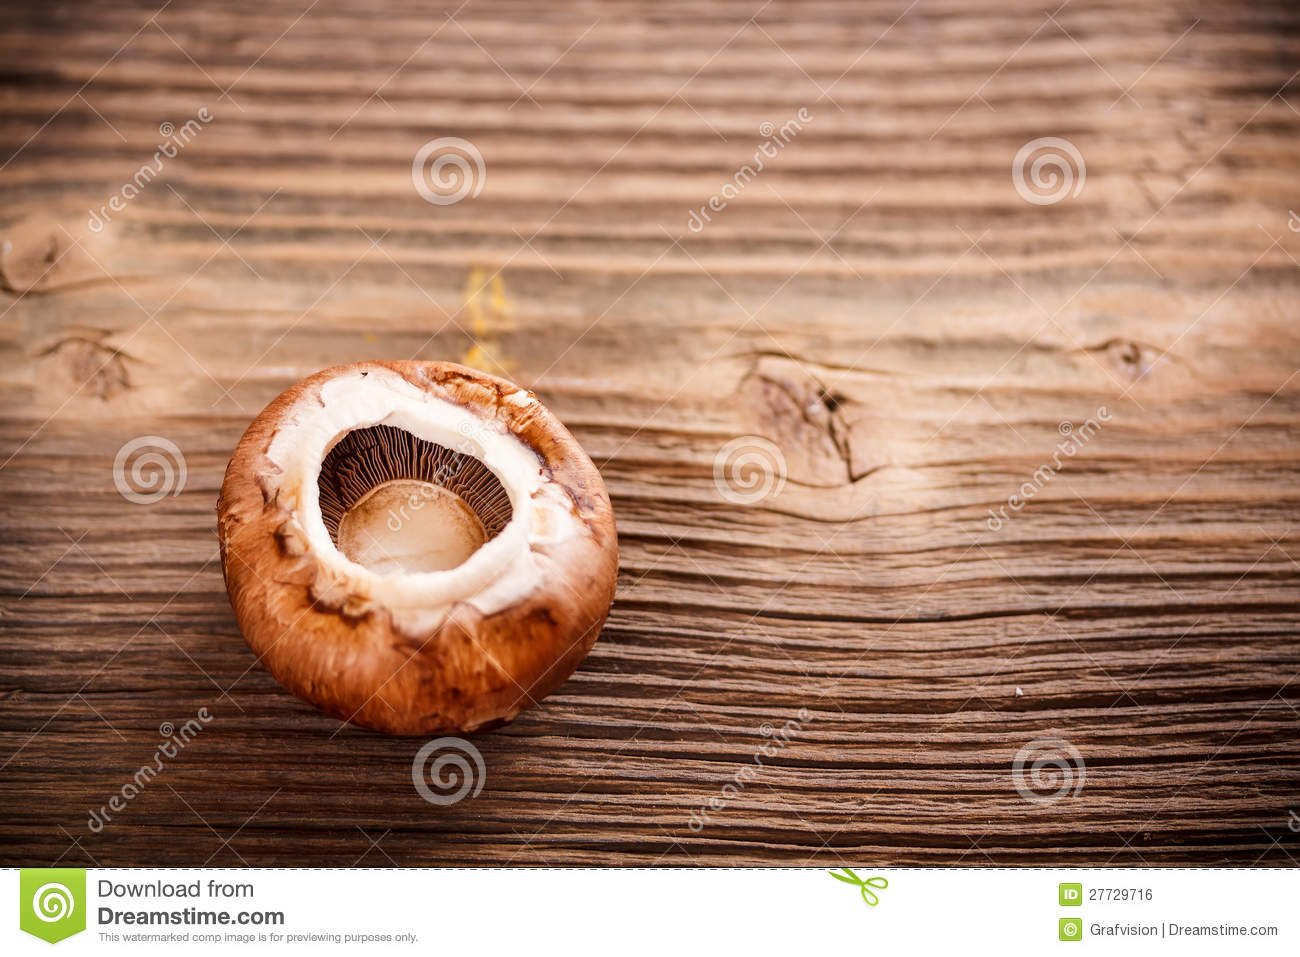 Brown-Champignon